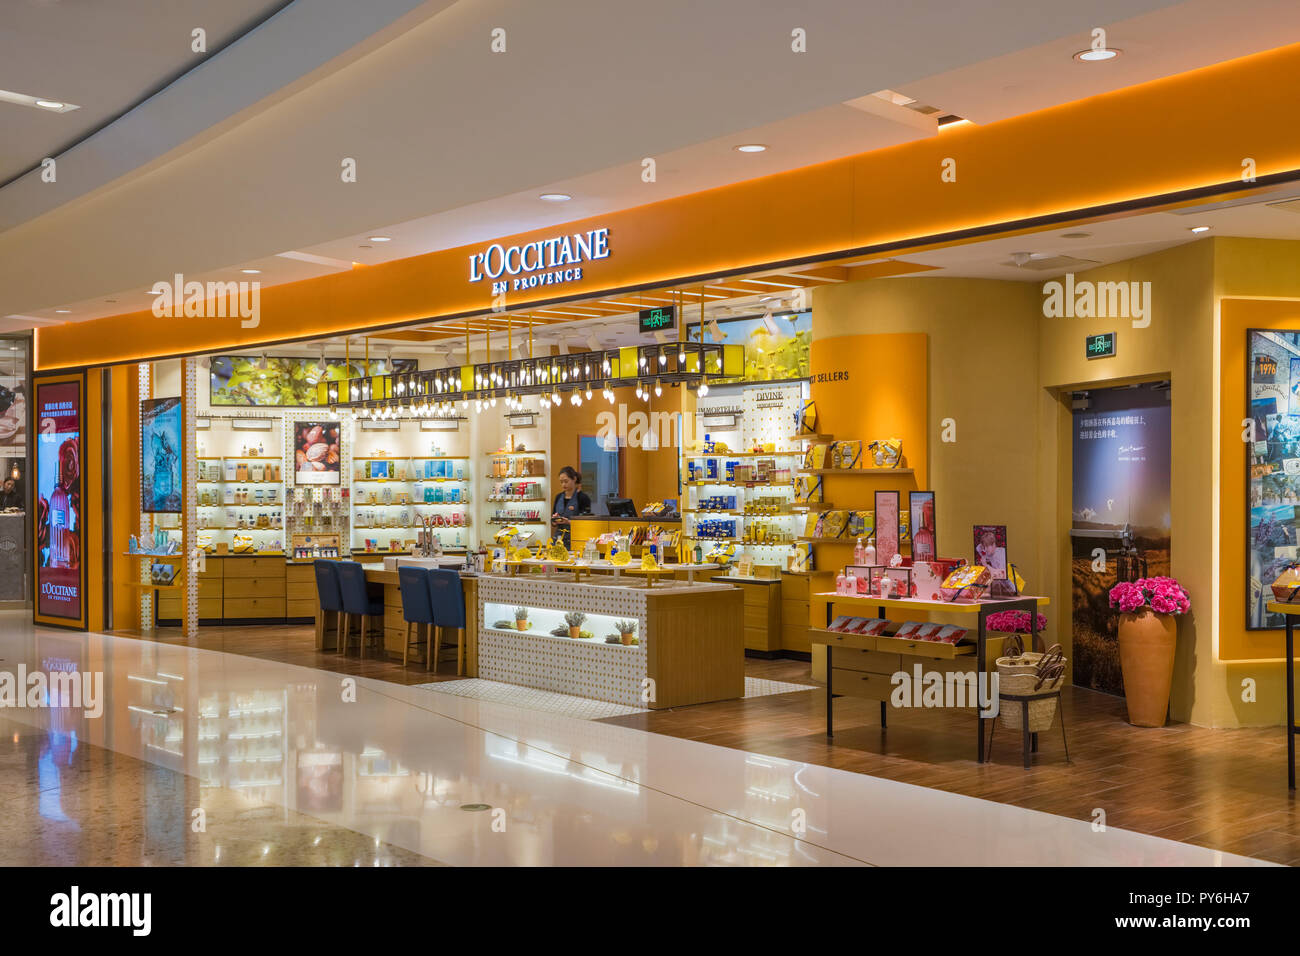 Store En Stock L Occitane Store In Shanghai China Asia Stock Photo 223265455